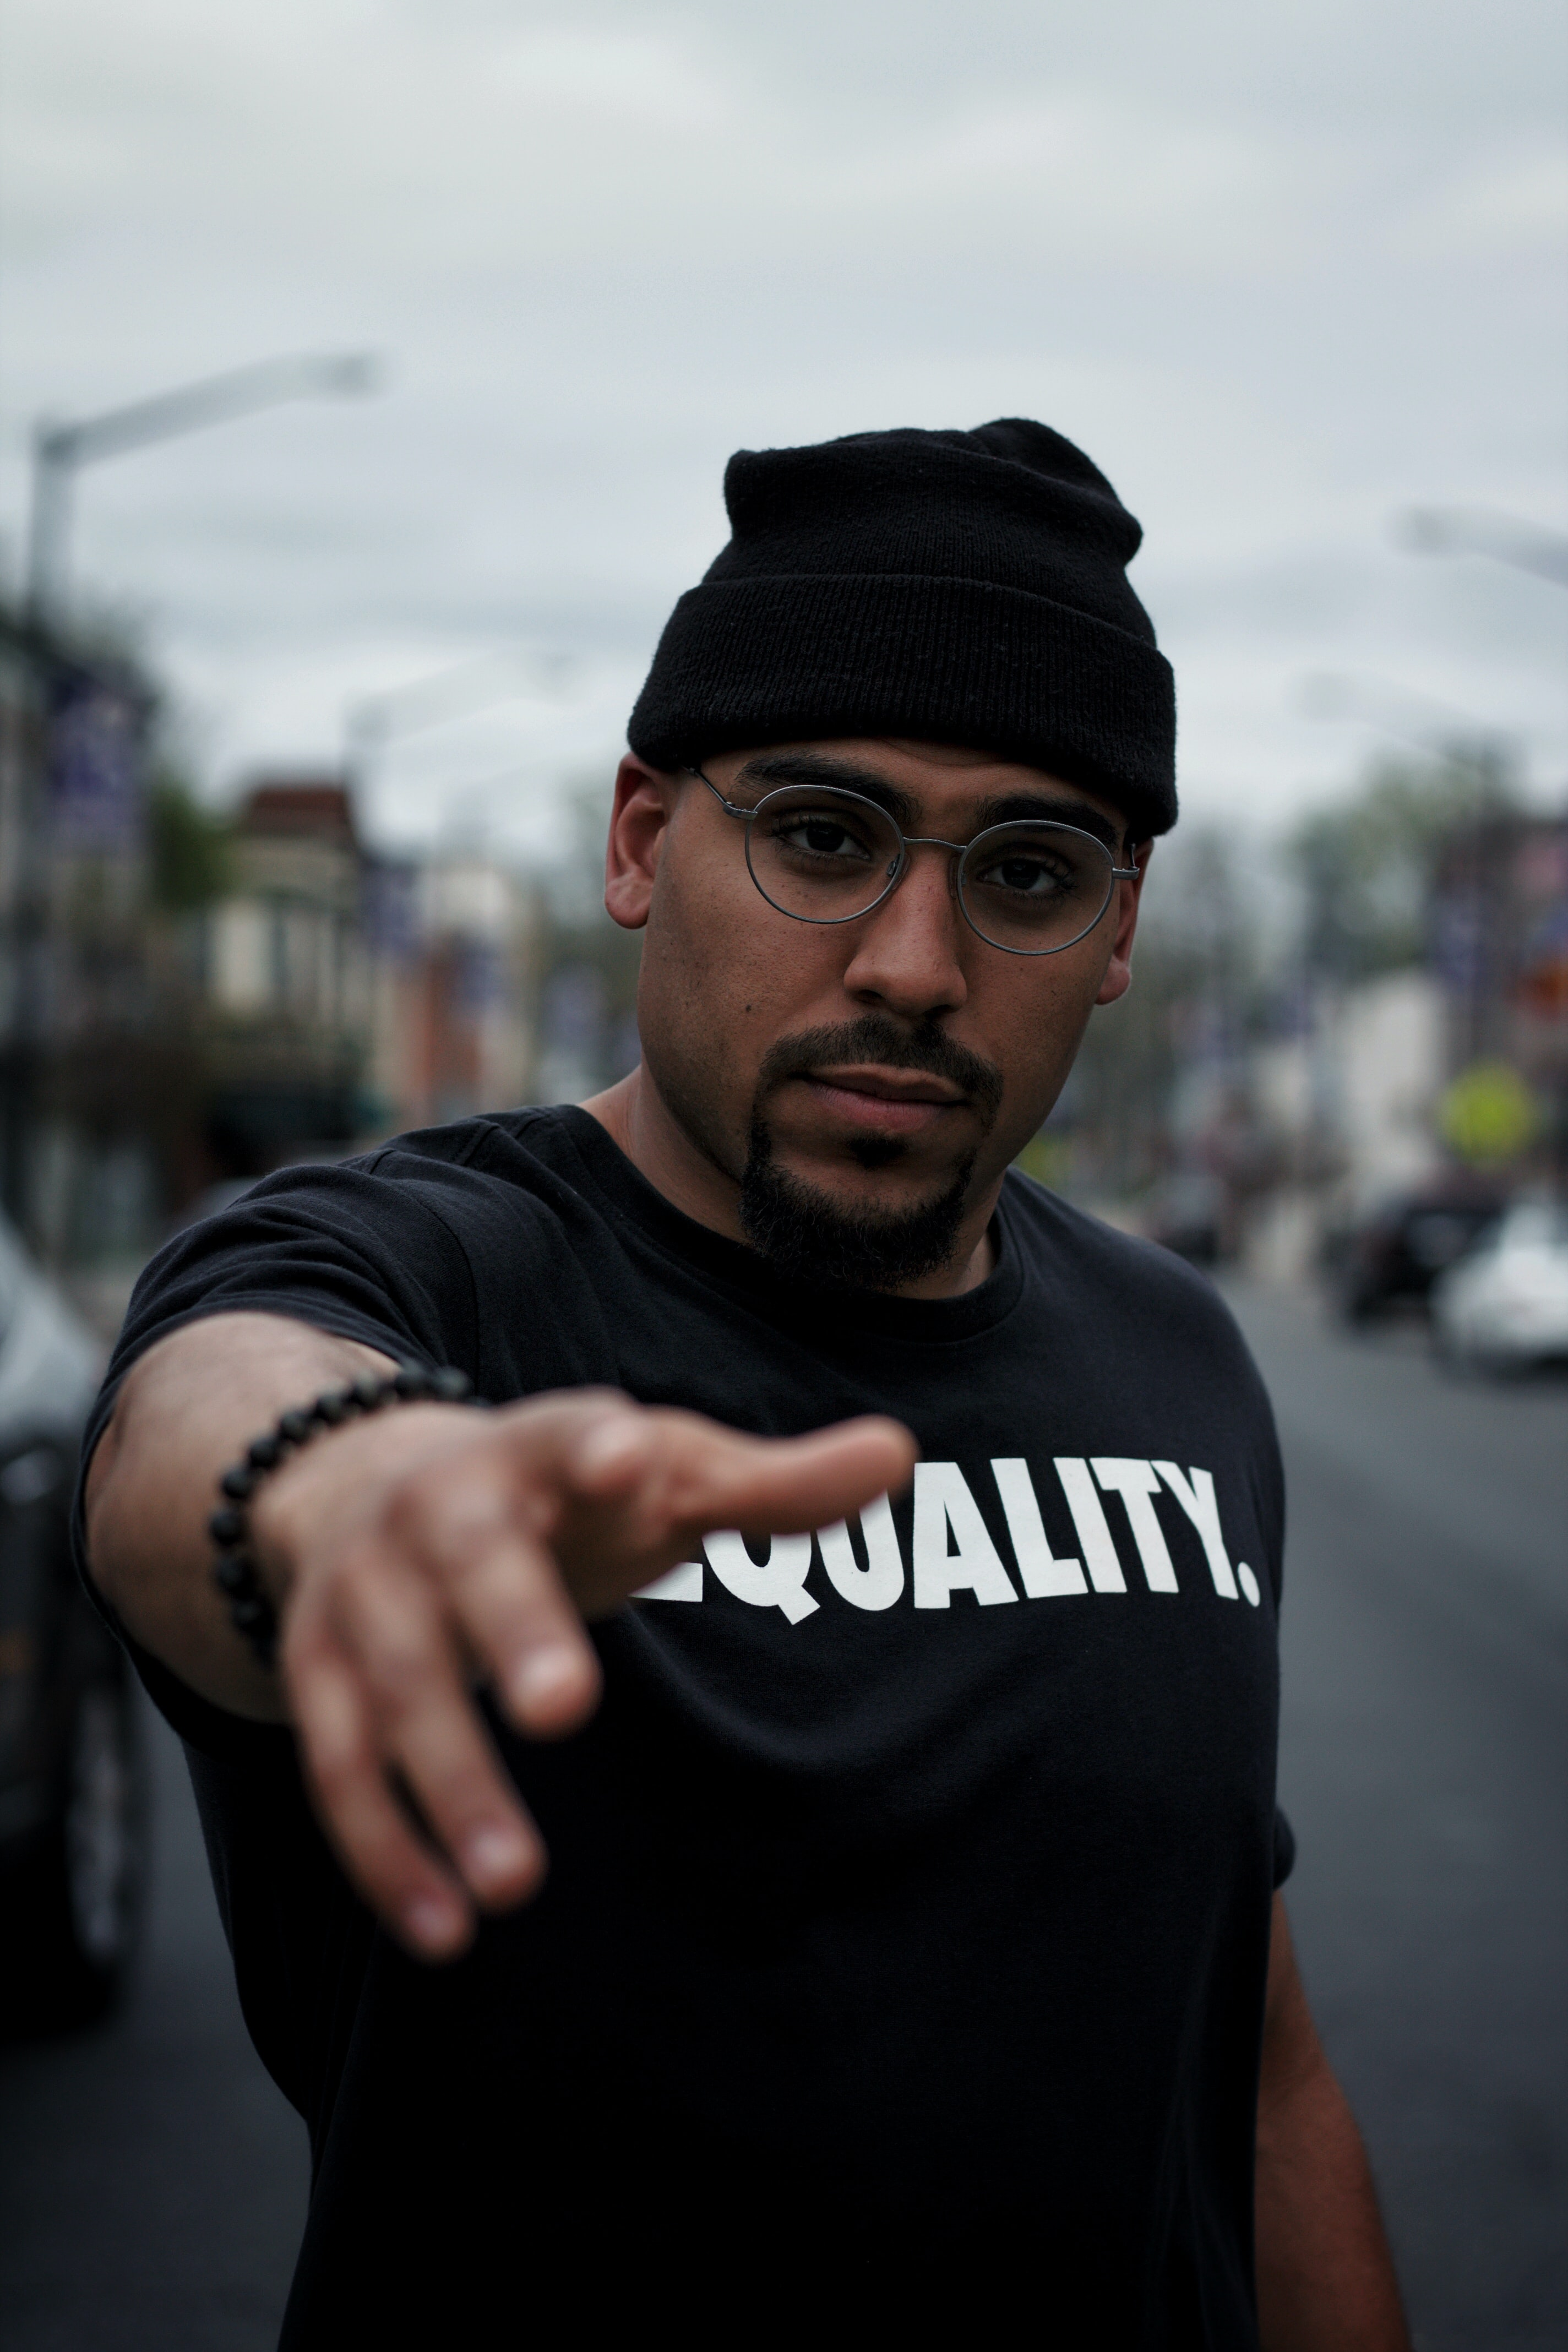 Black man pointing wearing shirt which says equality